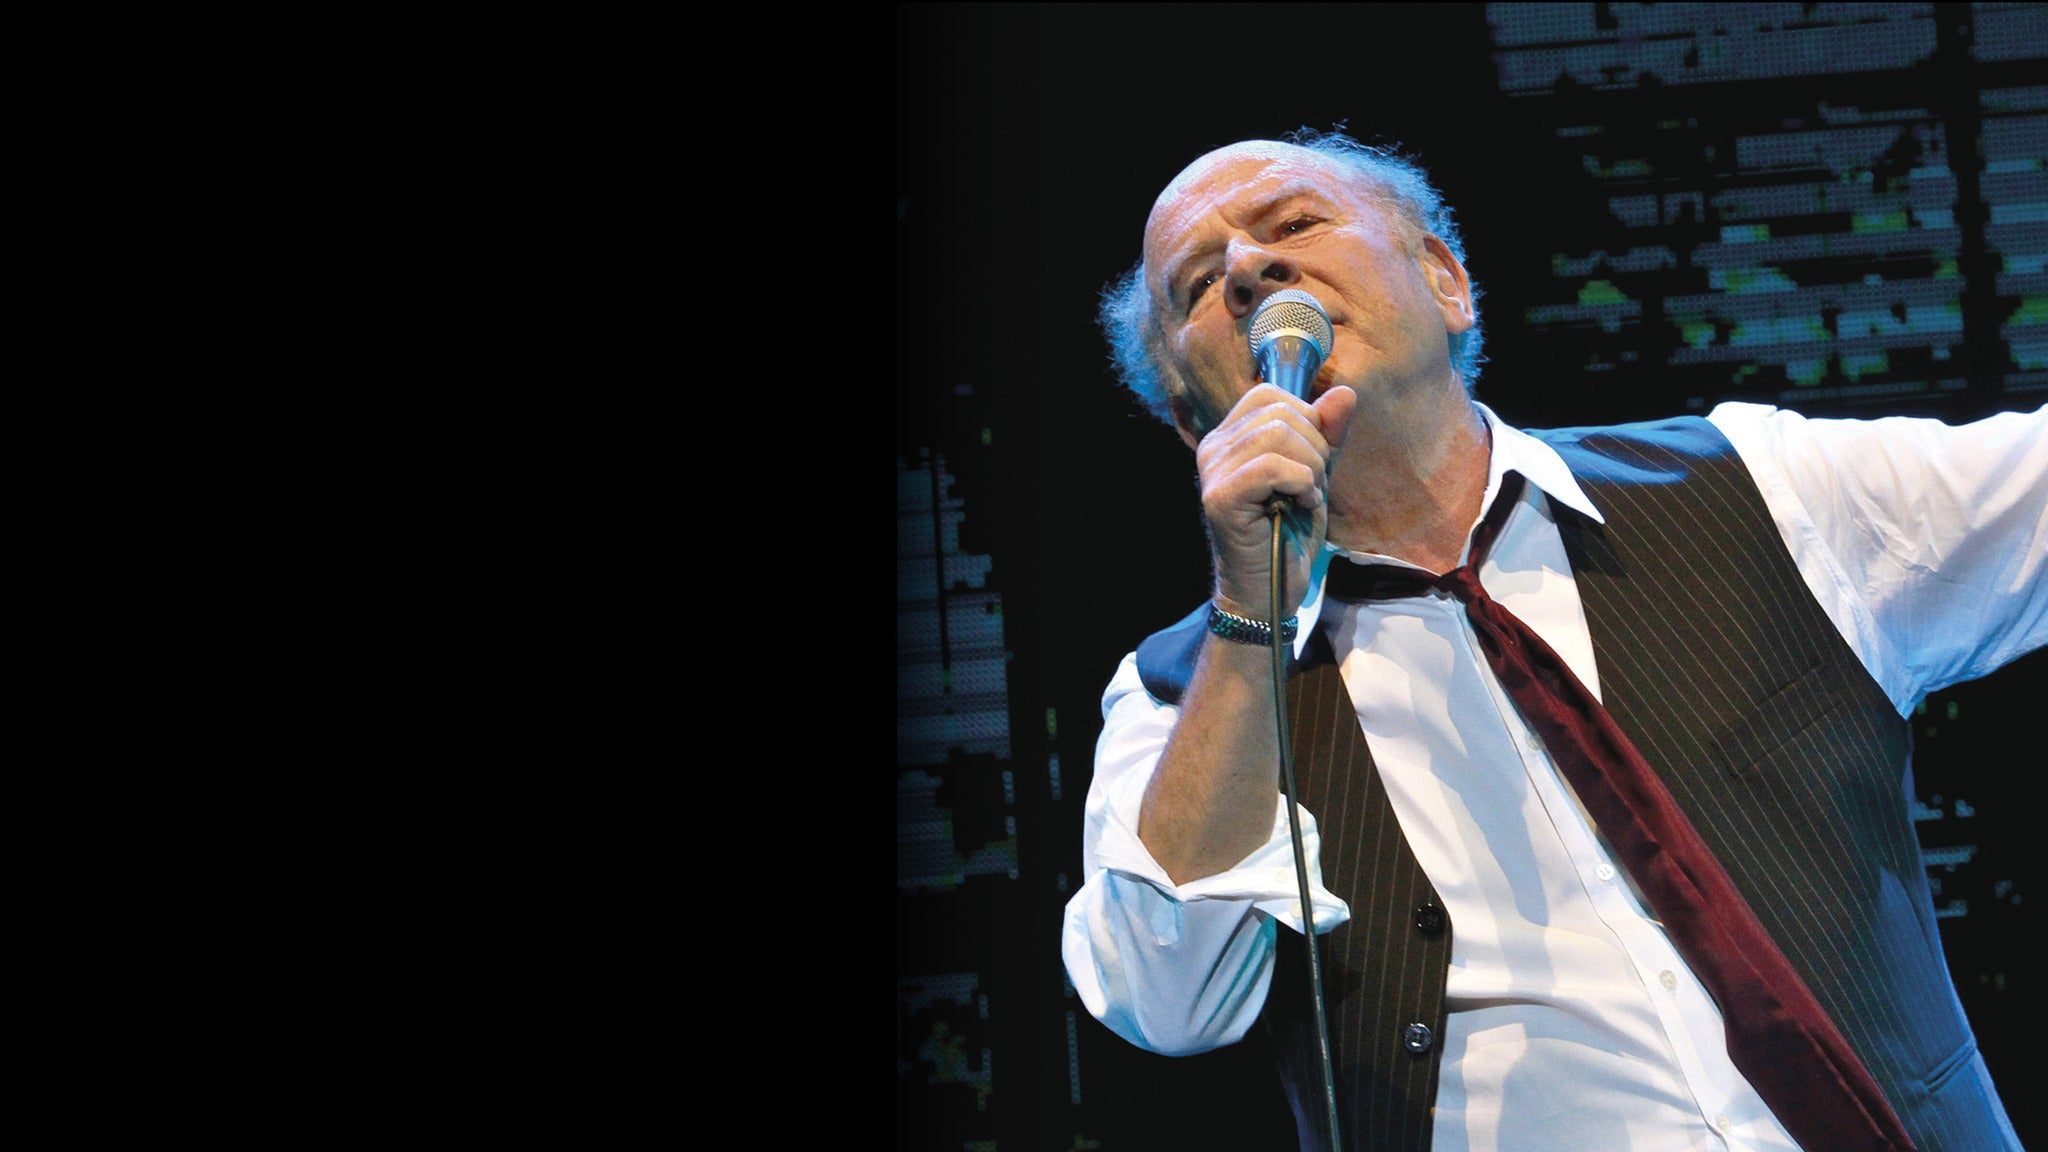 Art Garfunkel at Bergen Performing Arts Center